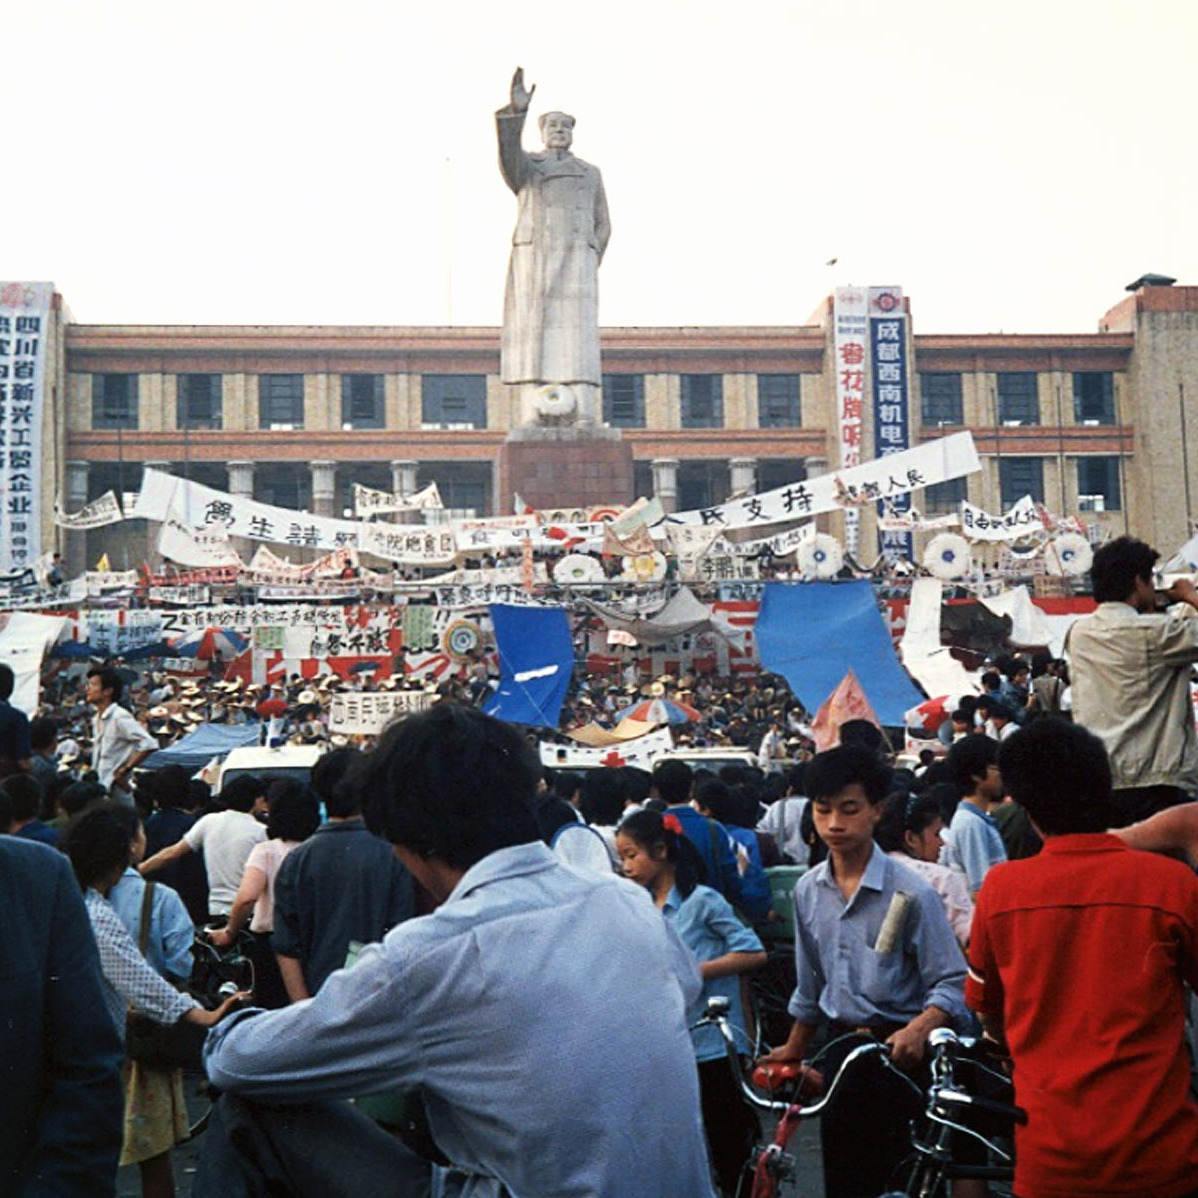 The world media captured the 1989 protests and crackdown in Beijing's Tiananmen Square. But across China, similar protests were taking place. Students in the southwest city of Chengdu began their own hunger strike in Tianfu Square several days after their Beijing counterparts. The photographer of this image -- and several below -- asked not to be identified because of current ties with China.